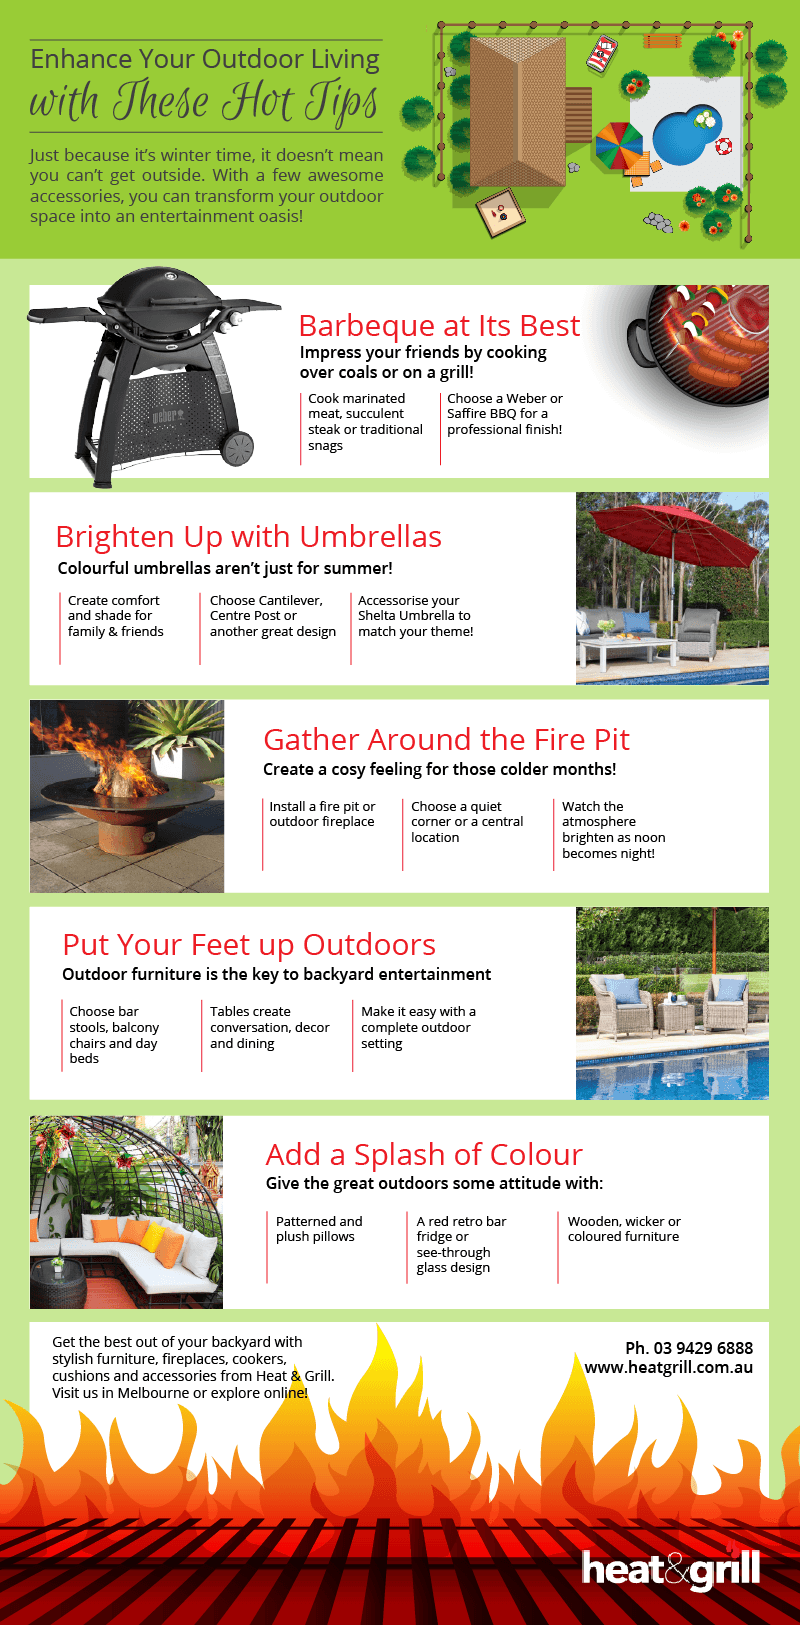 Enhance your Outdoor Living with these Hot Tips - Infographic